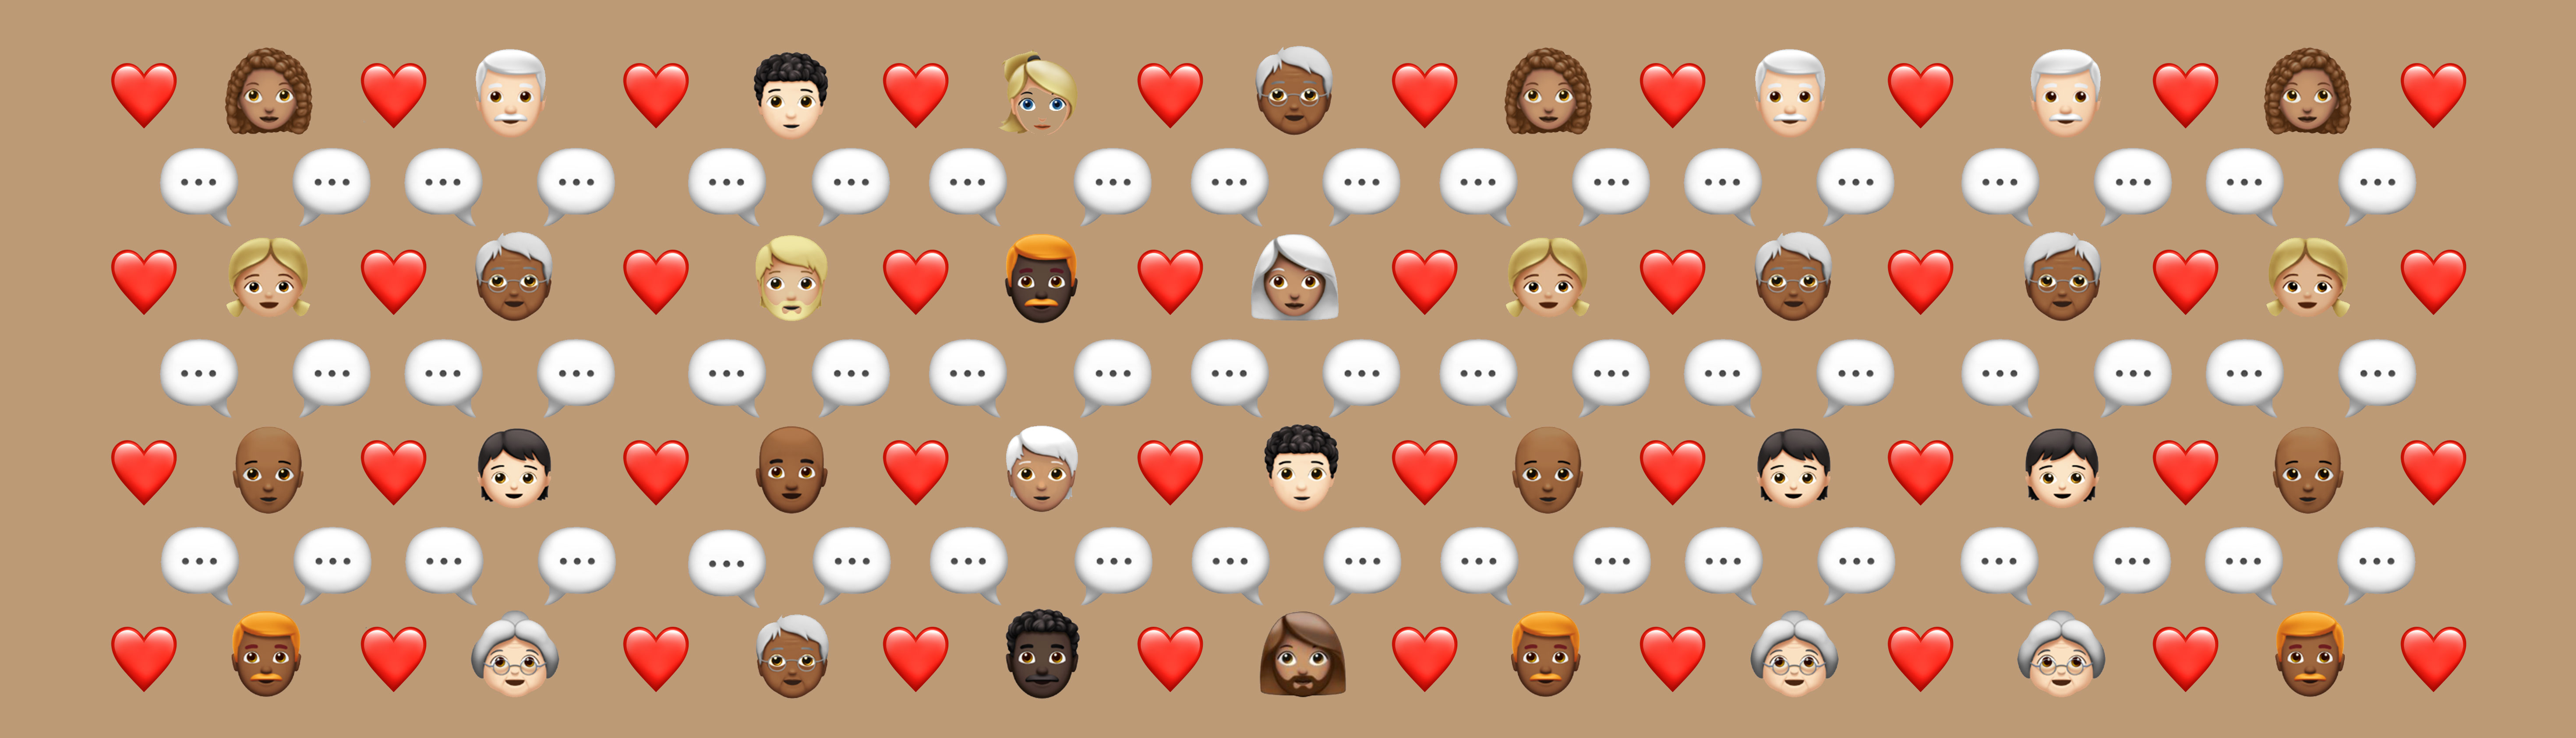 Multiple emojis of faces and hearts